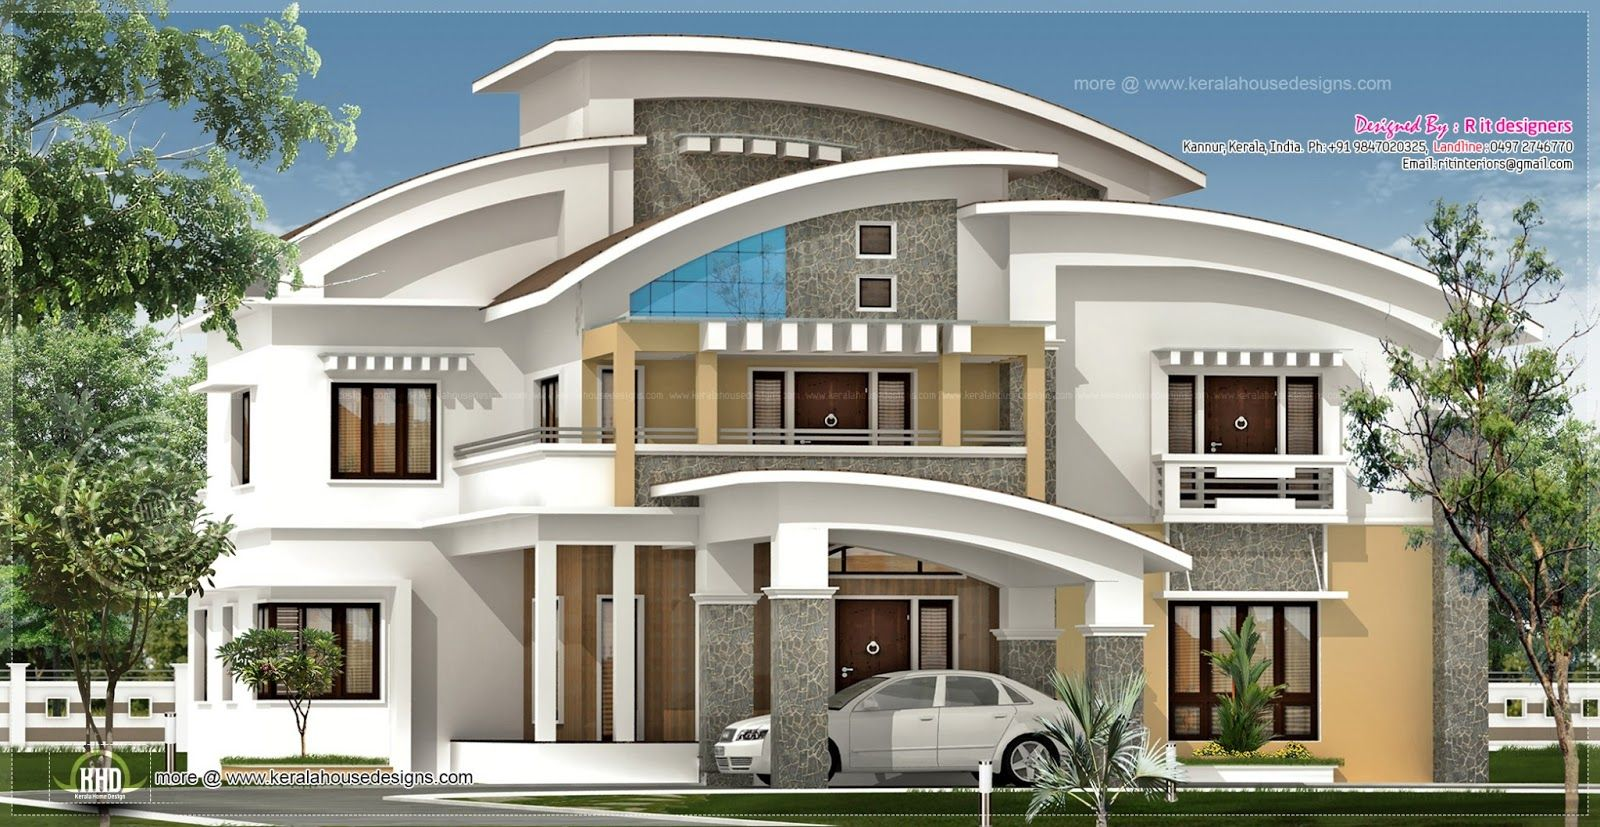 Awesome Luxury Homes Plans #8 French Country Luxury Home Floor